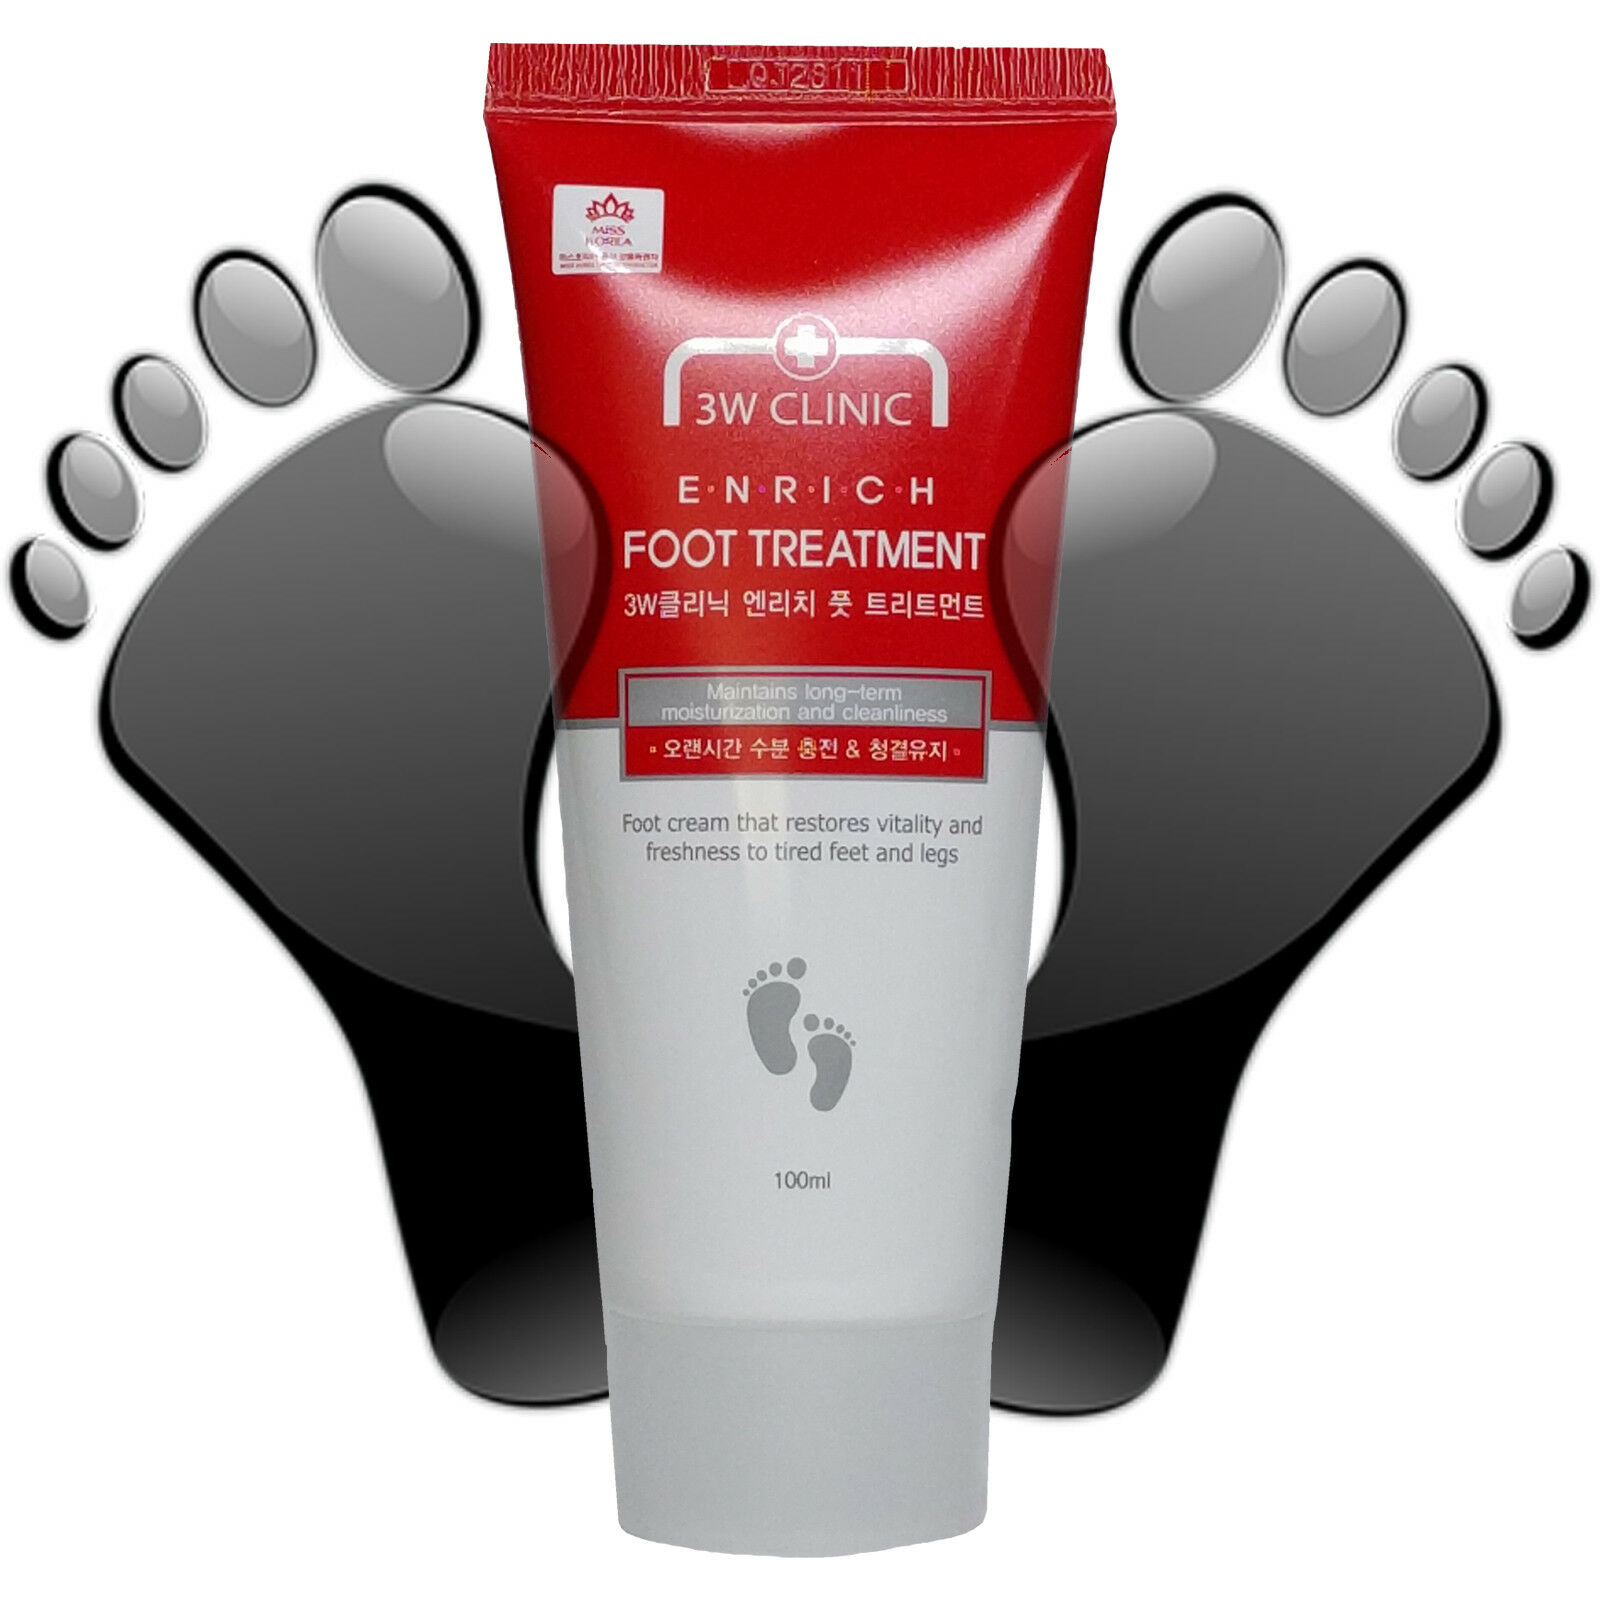 Details about Rich Foot Moisturizer Oily Cream Hyaluronic Acid Dry &  Cracked Feet & Legs 100ml